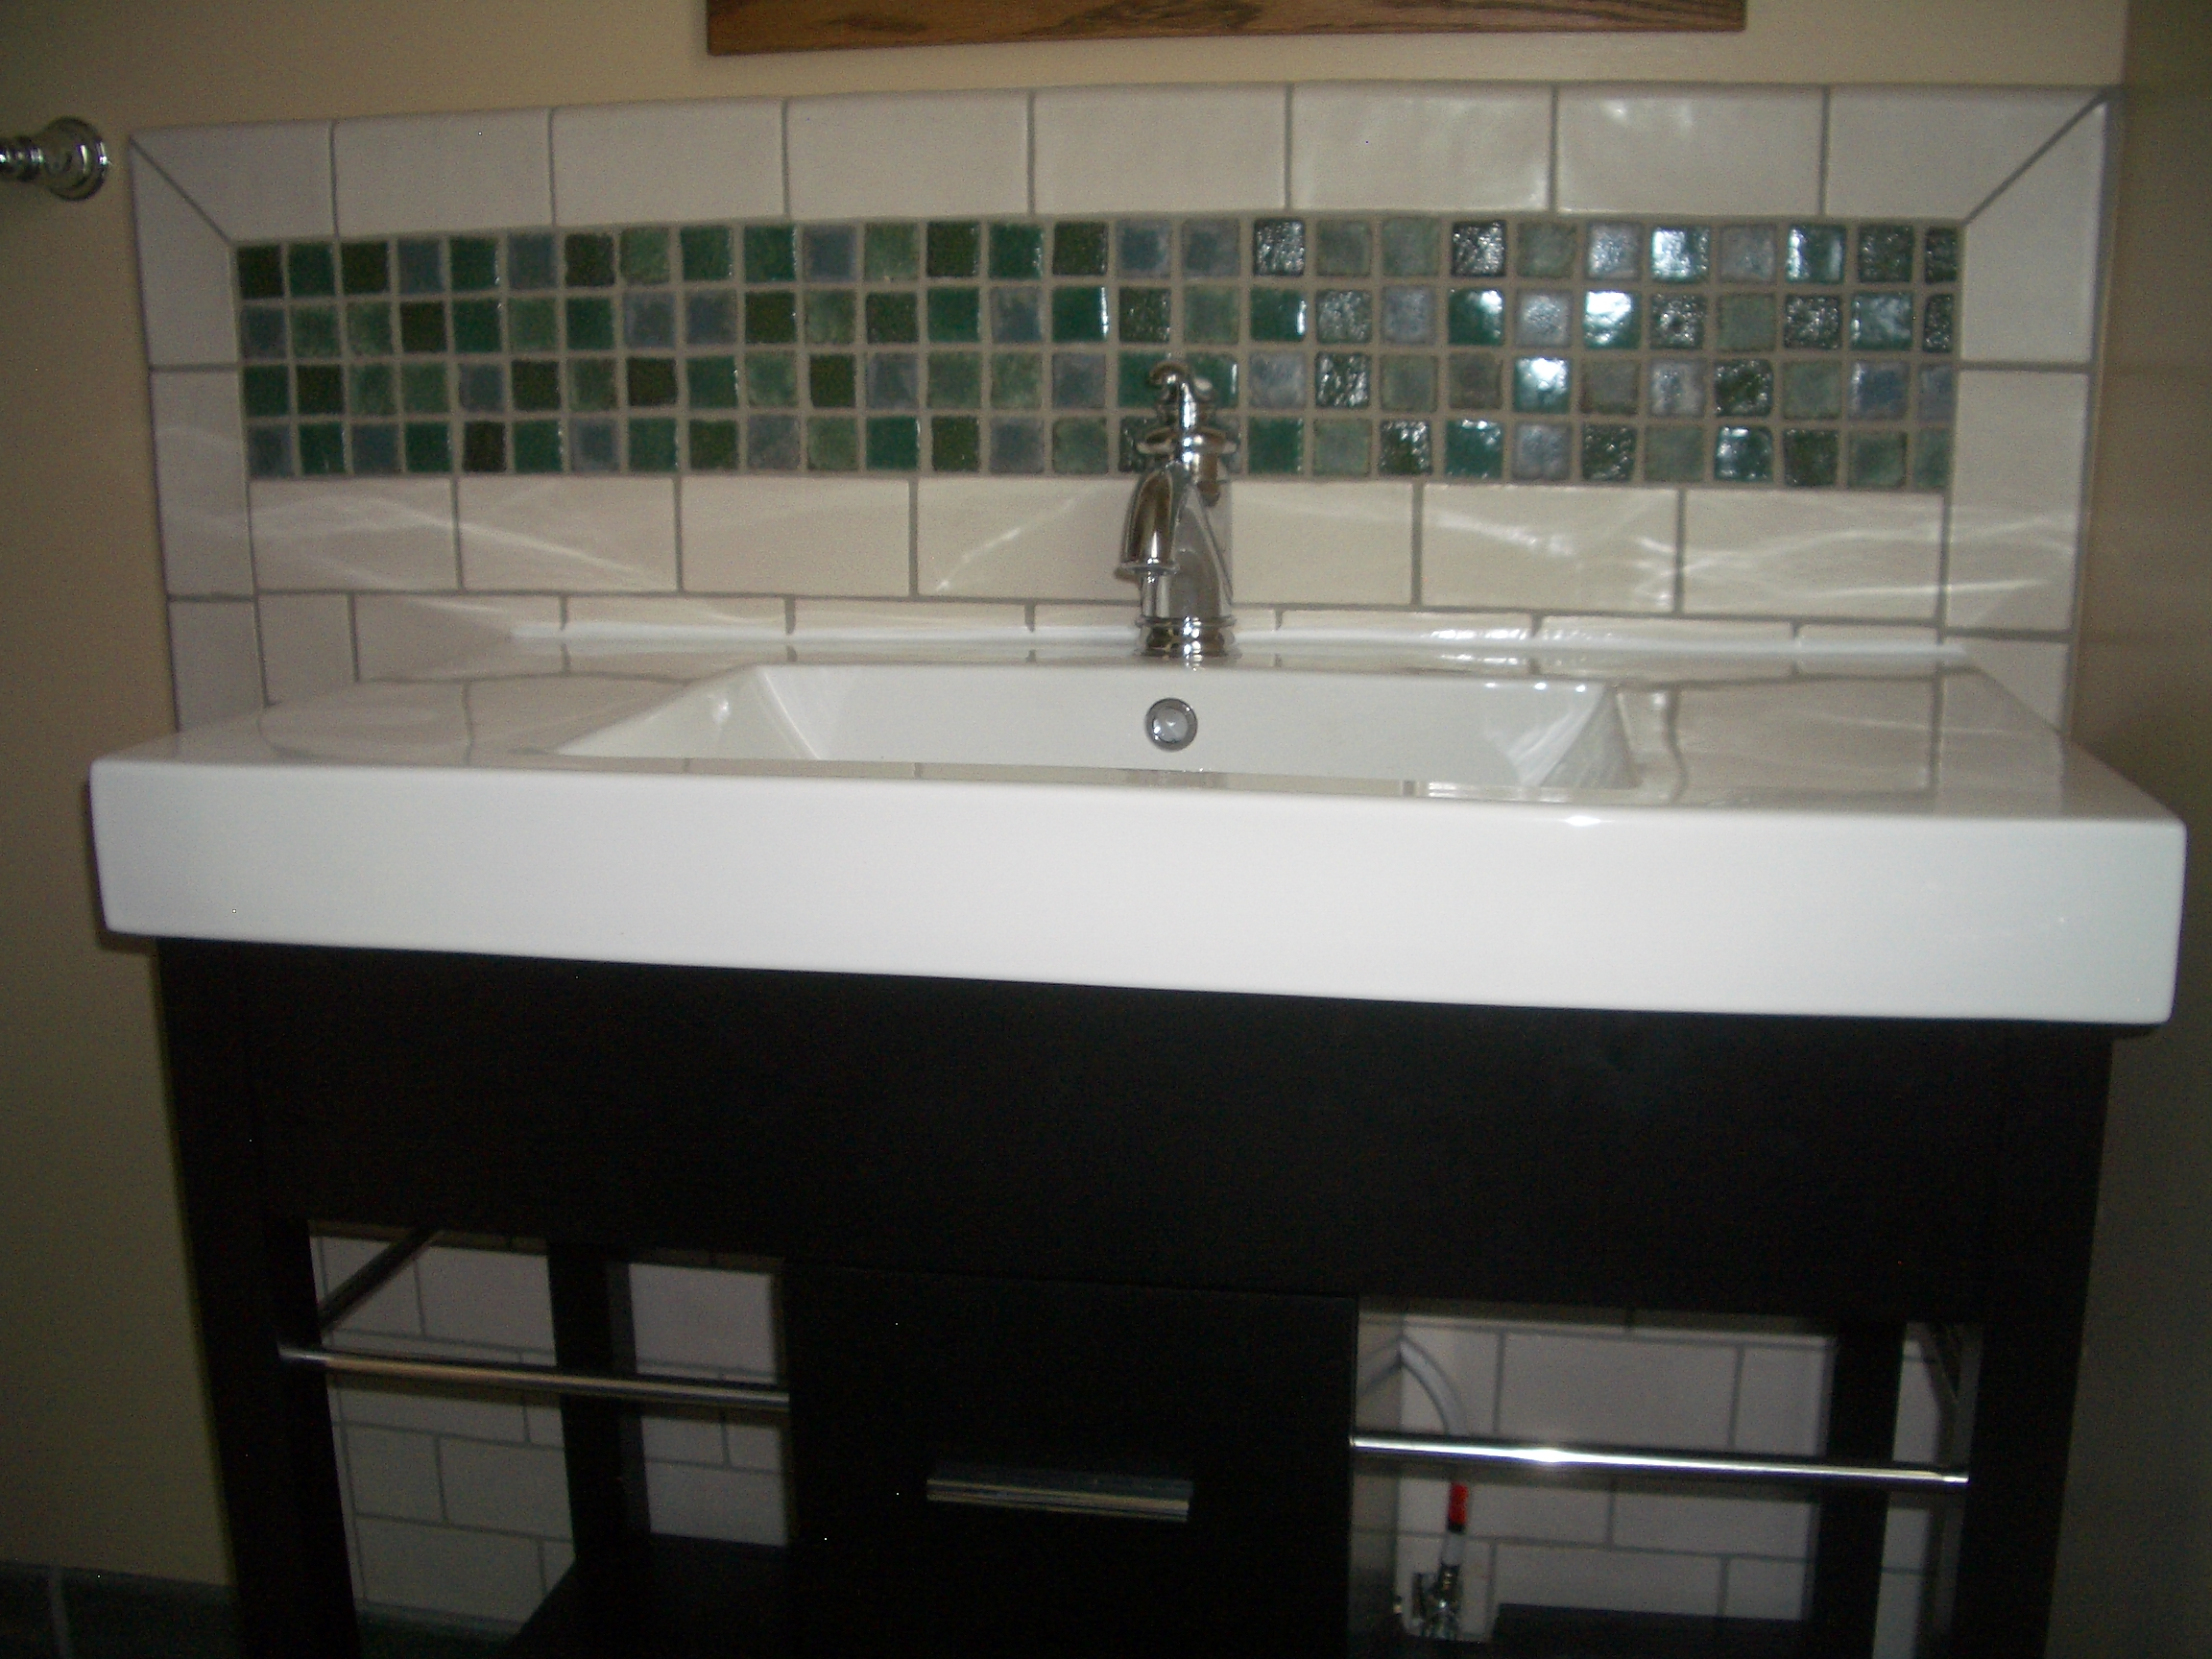 after the new sink and tile backsplash adds beauty and functionality